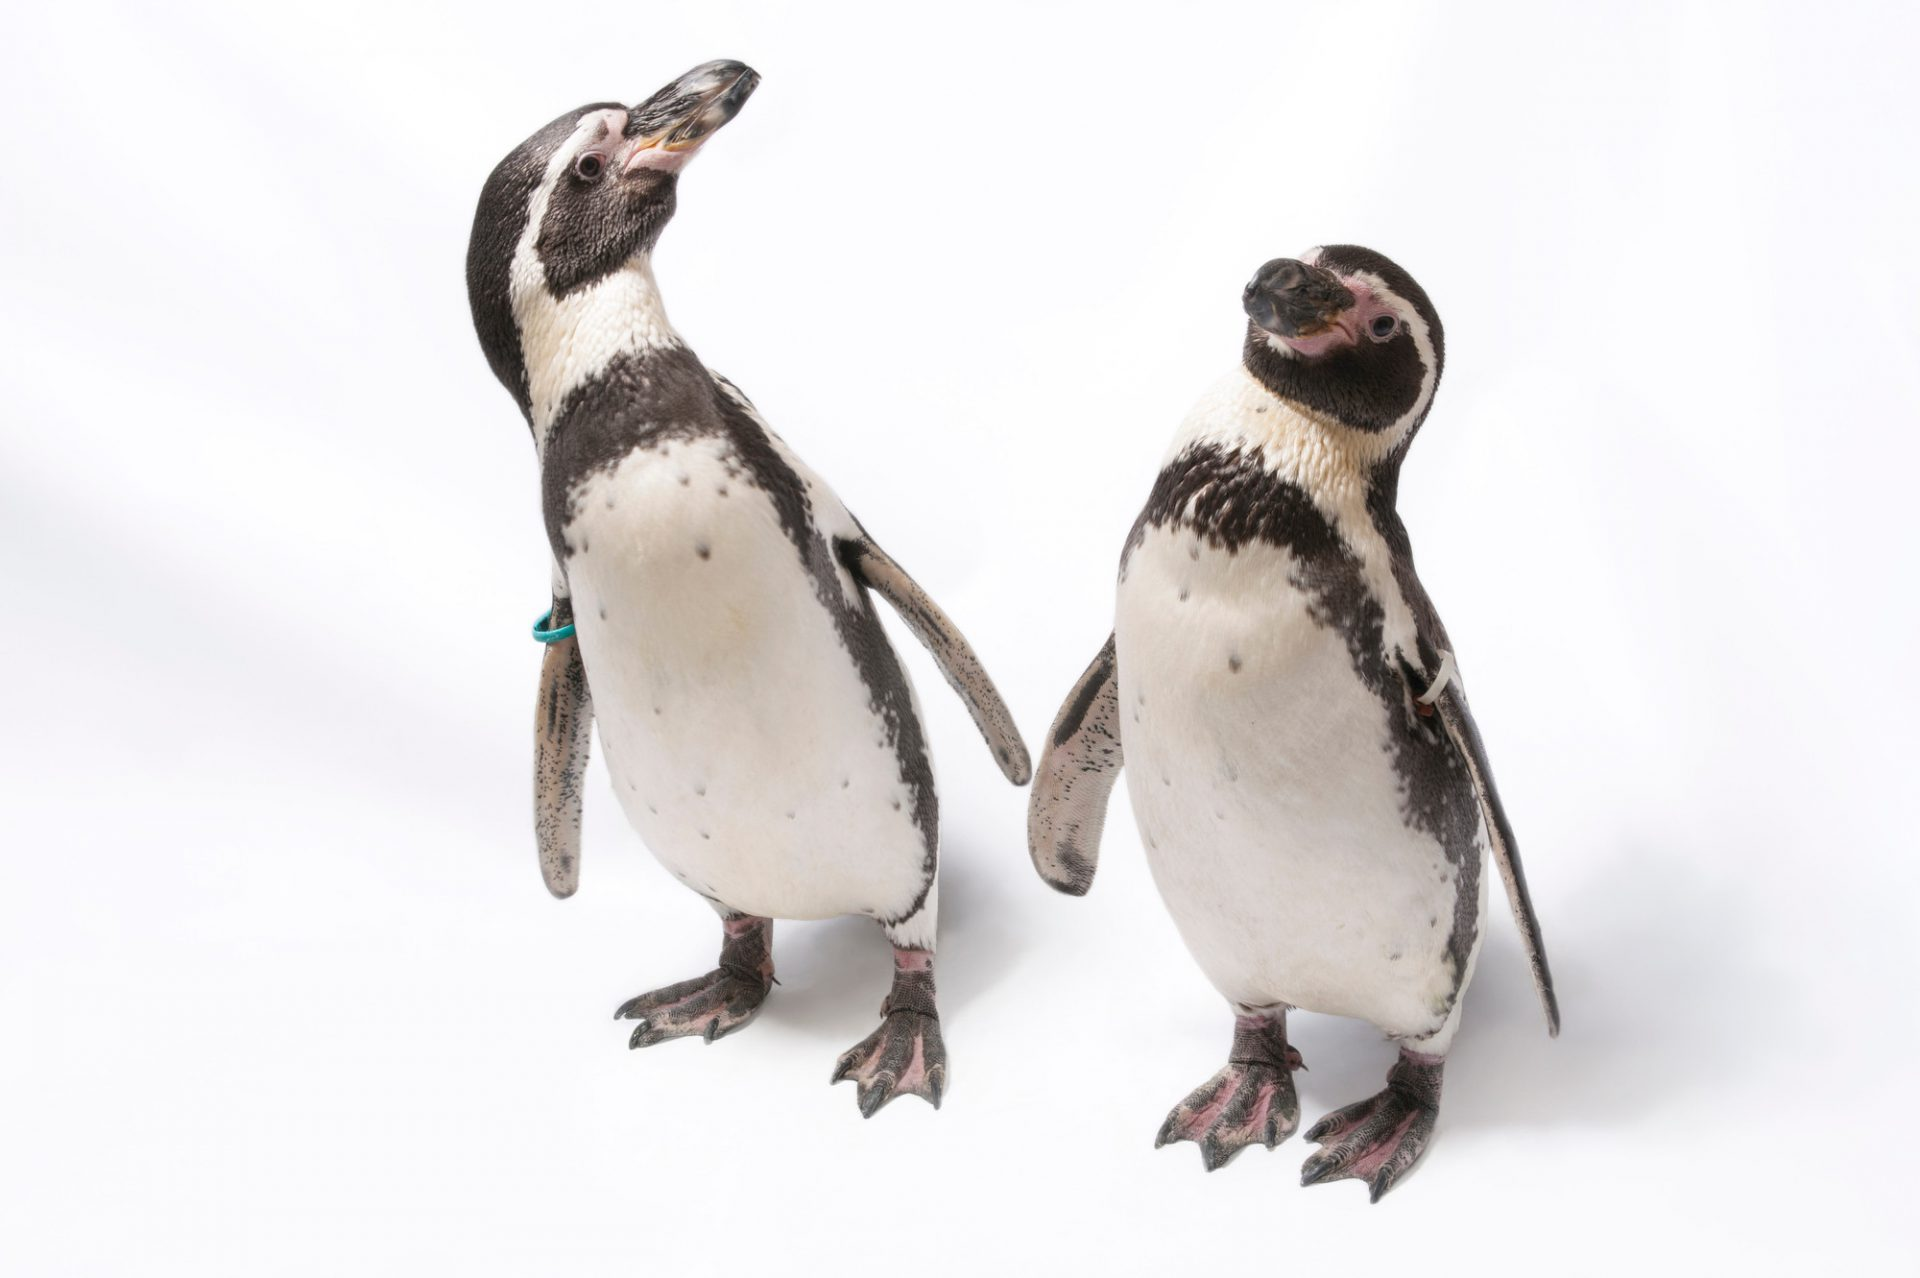 Humboldt penguins at the Great Plains Zoo. (IUCN: Vulnerable)